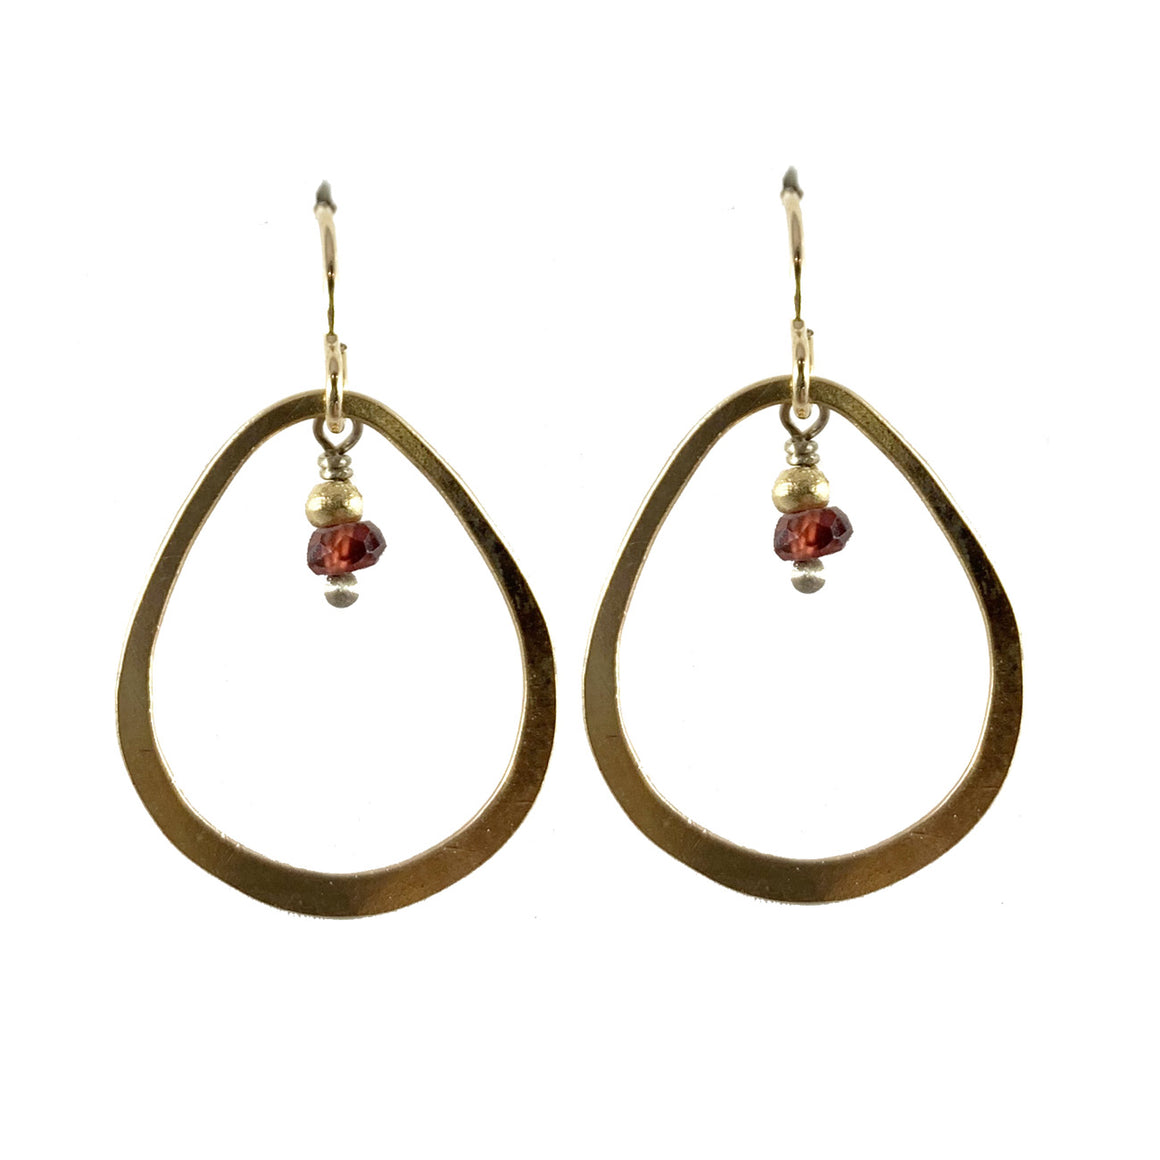 14kt Goldfilled Teardrop Earrings with Garnet